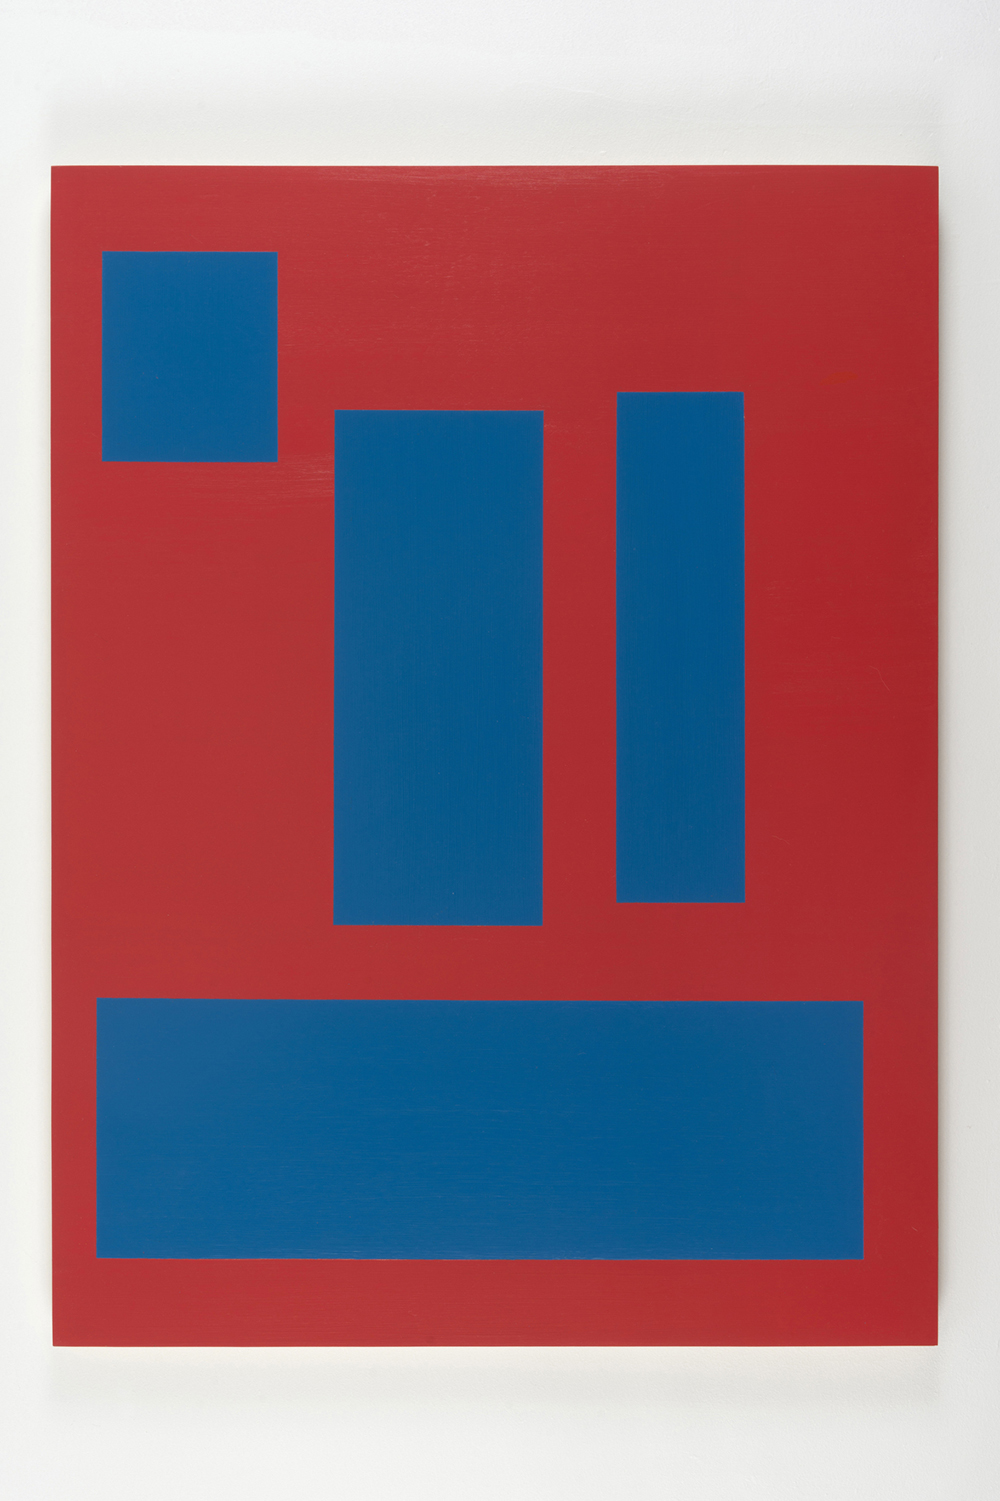 Station, 2012, by Tom McGlynn. Acrylic and gouache on wood panel minimally designed as a red background with four blue squares inside.